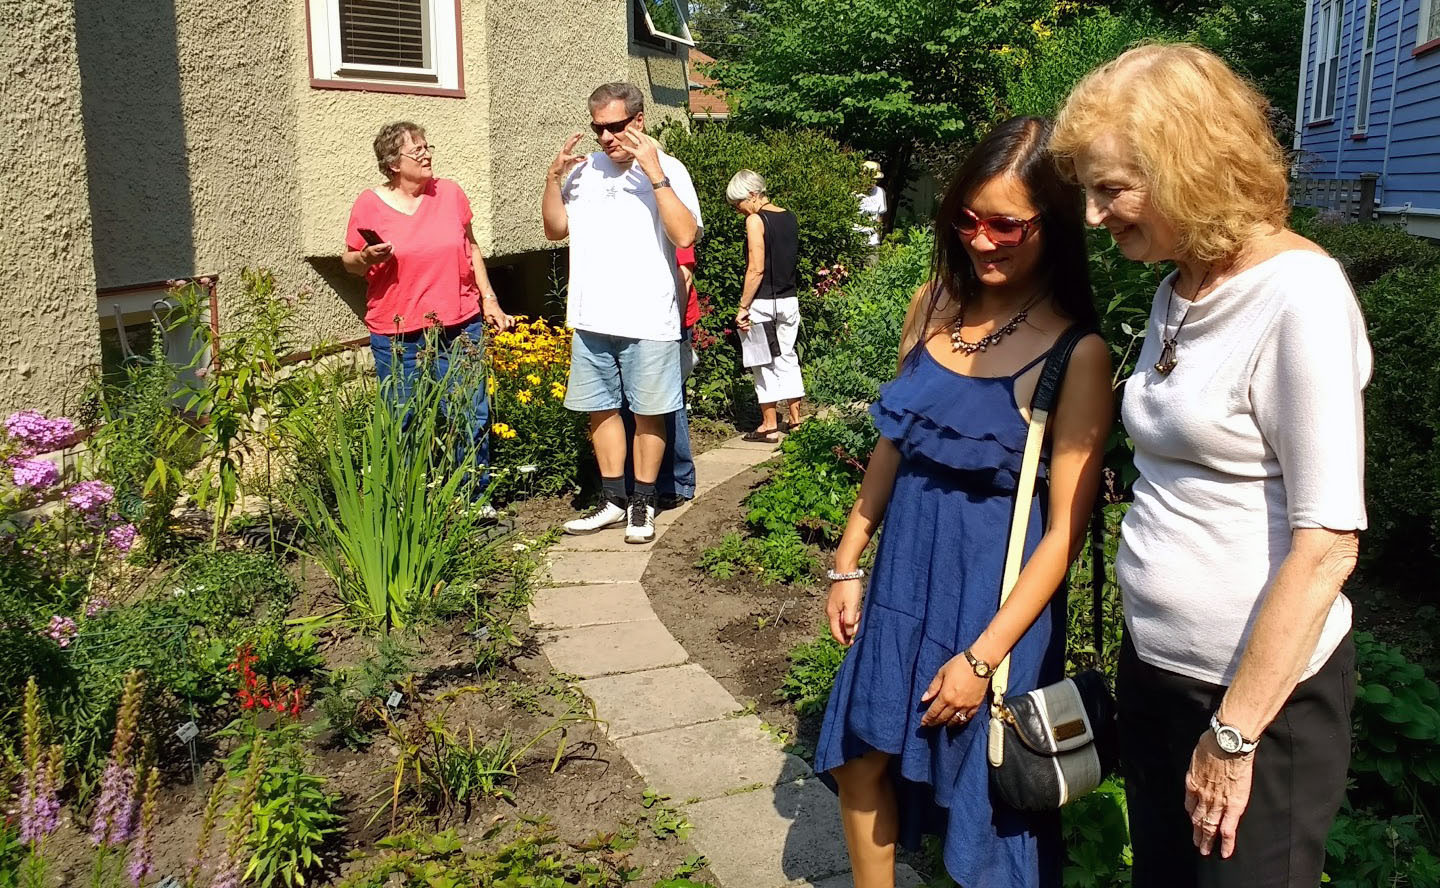 Mary Ann DeBruin (far right) shows her native plants to Michelle Cronin. Mary Ann's garden was one of 15 private and public native gardens on tour during peak season.